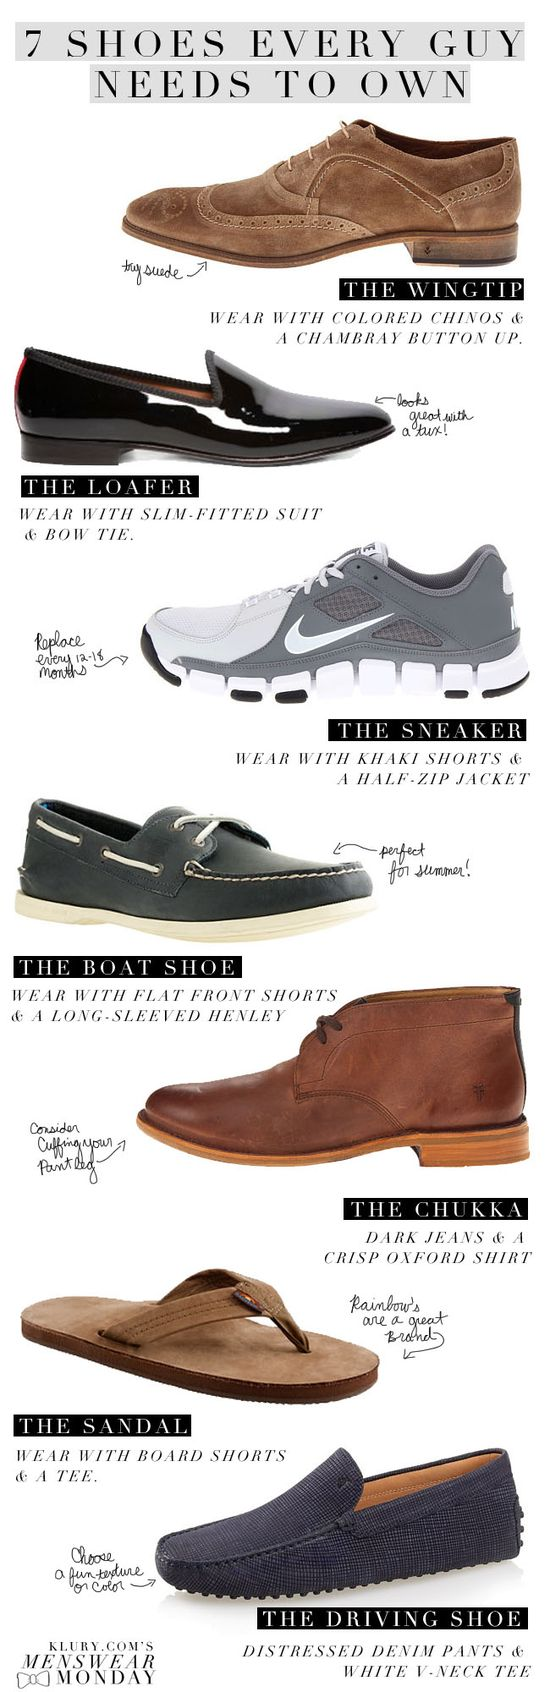 7 Shoes Every Guy Needs  www.richardsfabul...